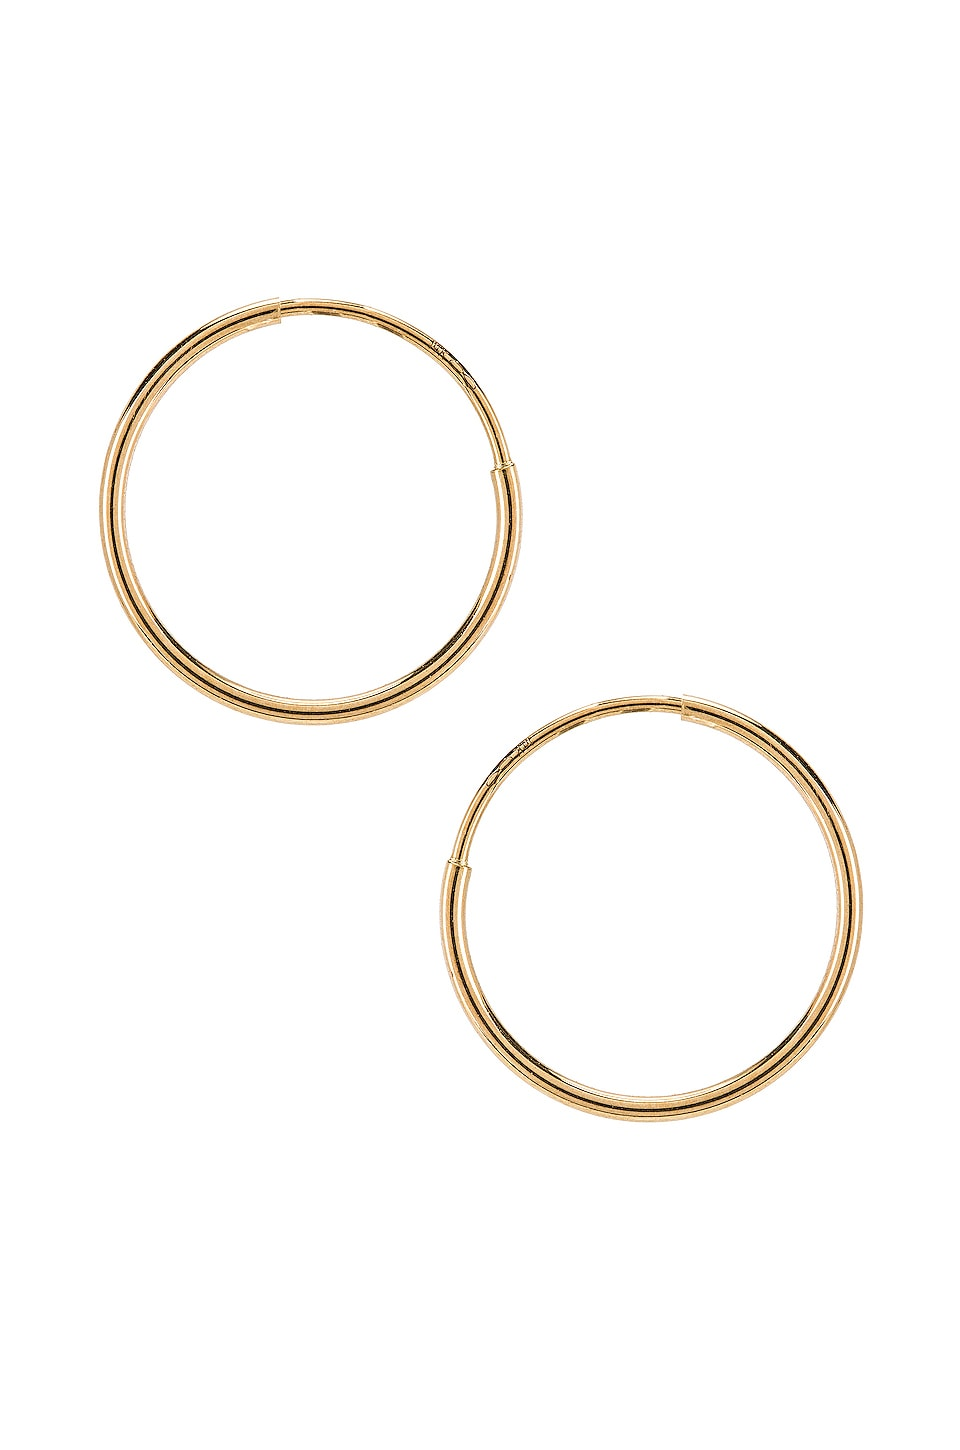 ERTH Classic Hoops in Gold